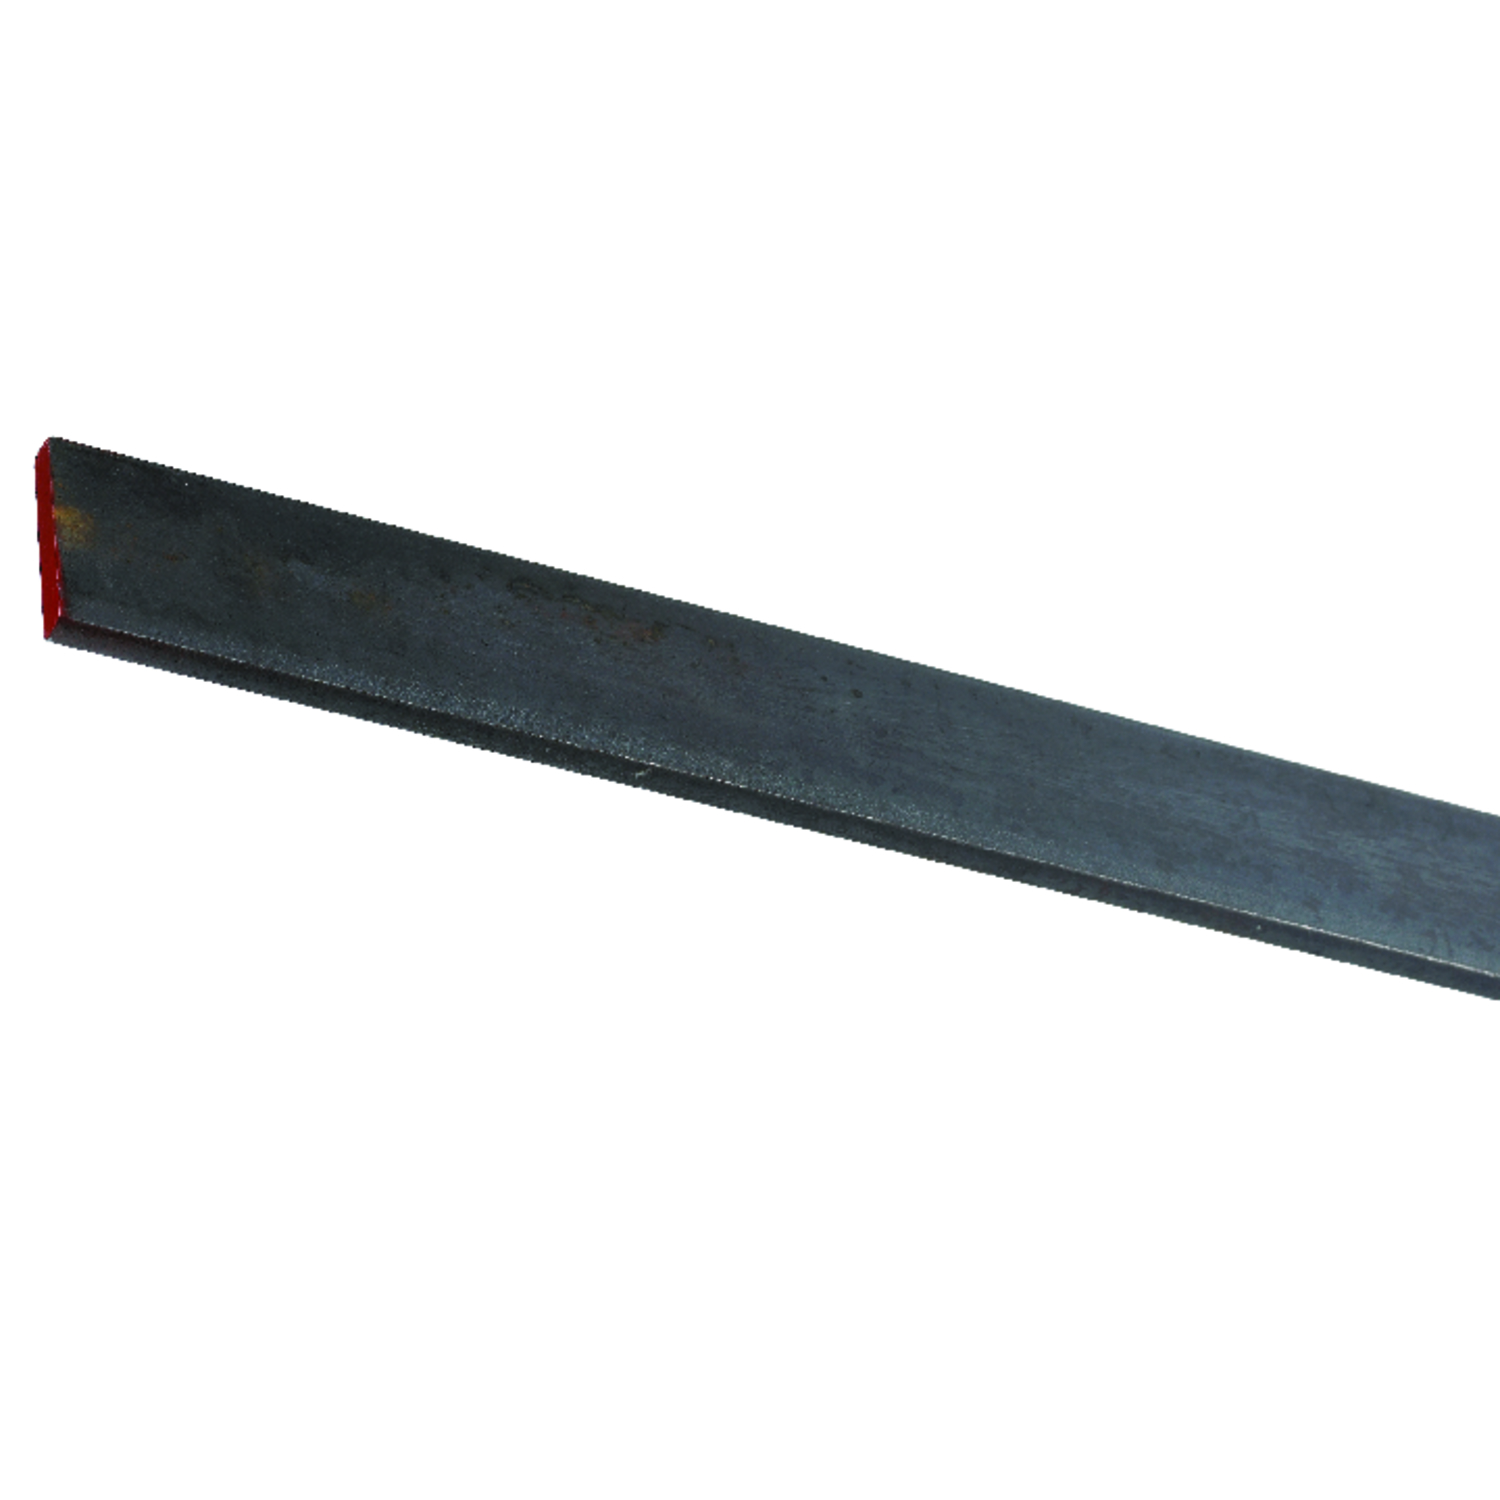 3in x 24in x 1//4in Steel Flat Plate 0.25in Thick